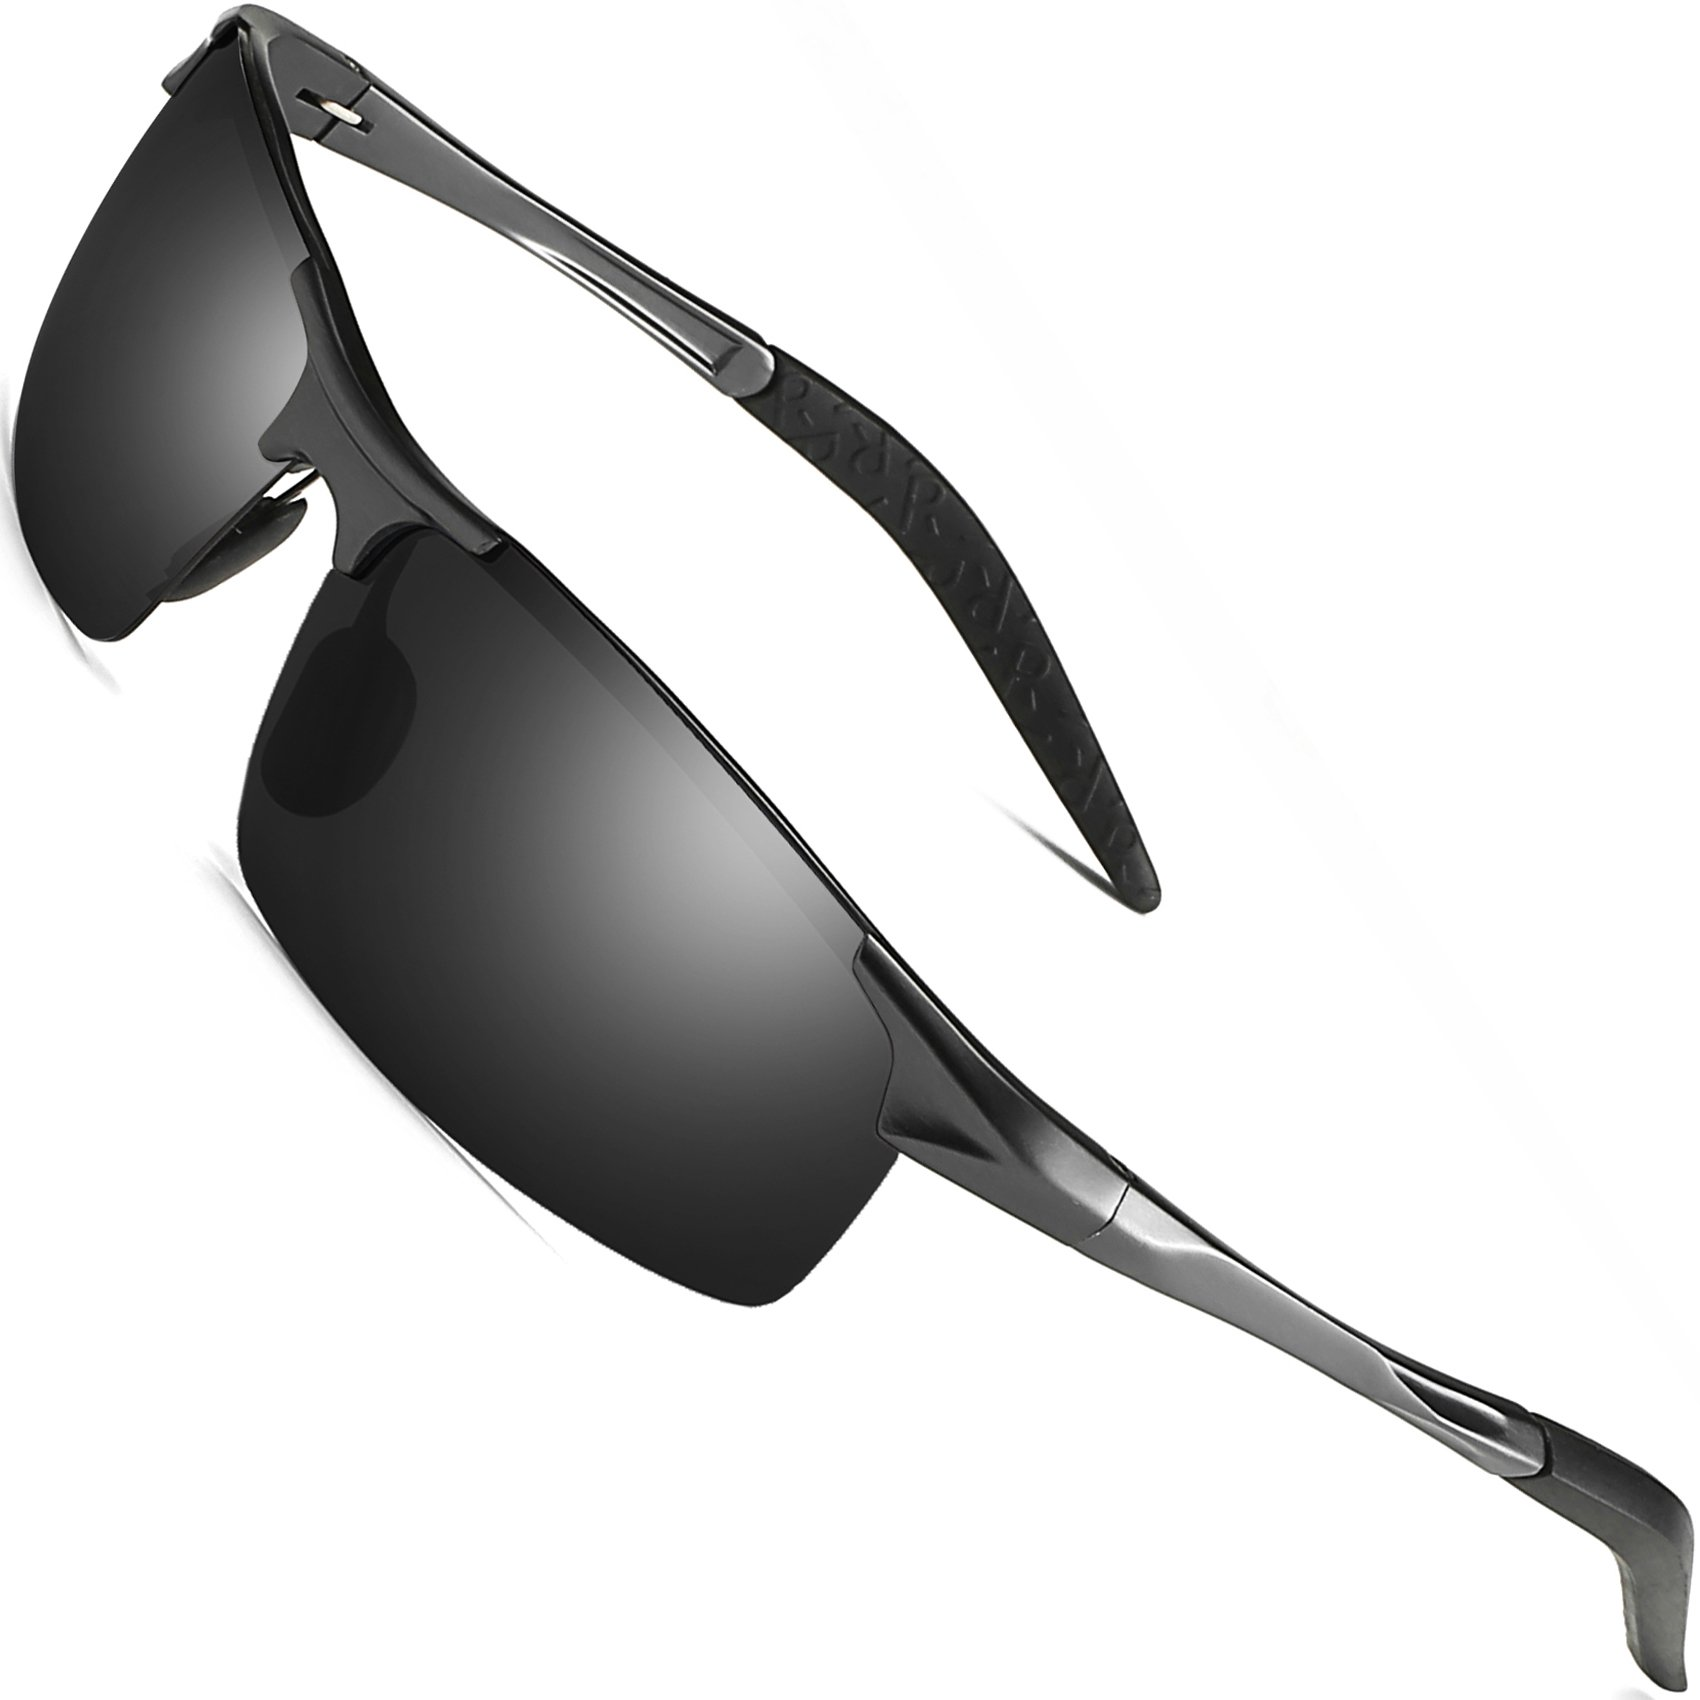 Sports Polarized Sunglasses for Men - FEIDU Driving Sunglasses UV400 Protection FD8005(black/gun)